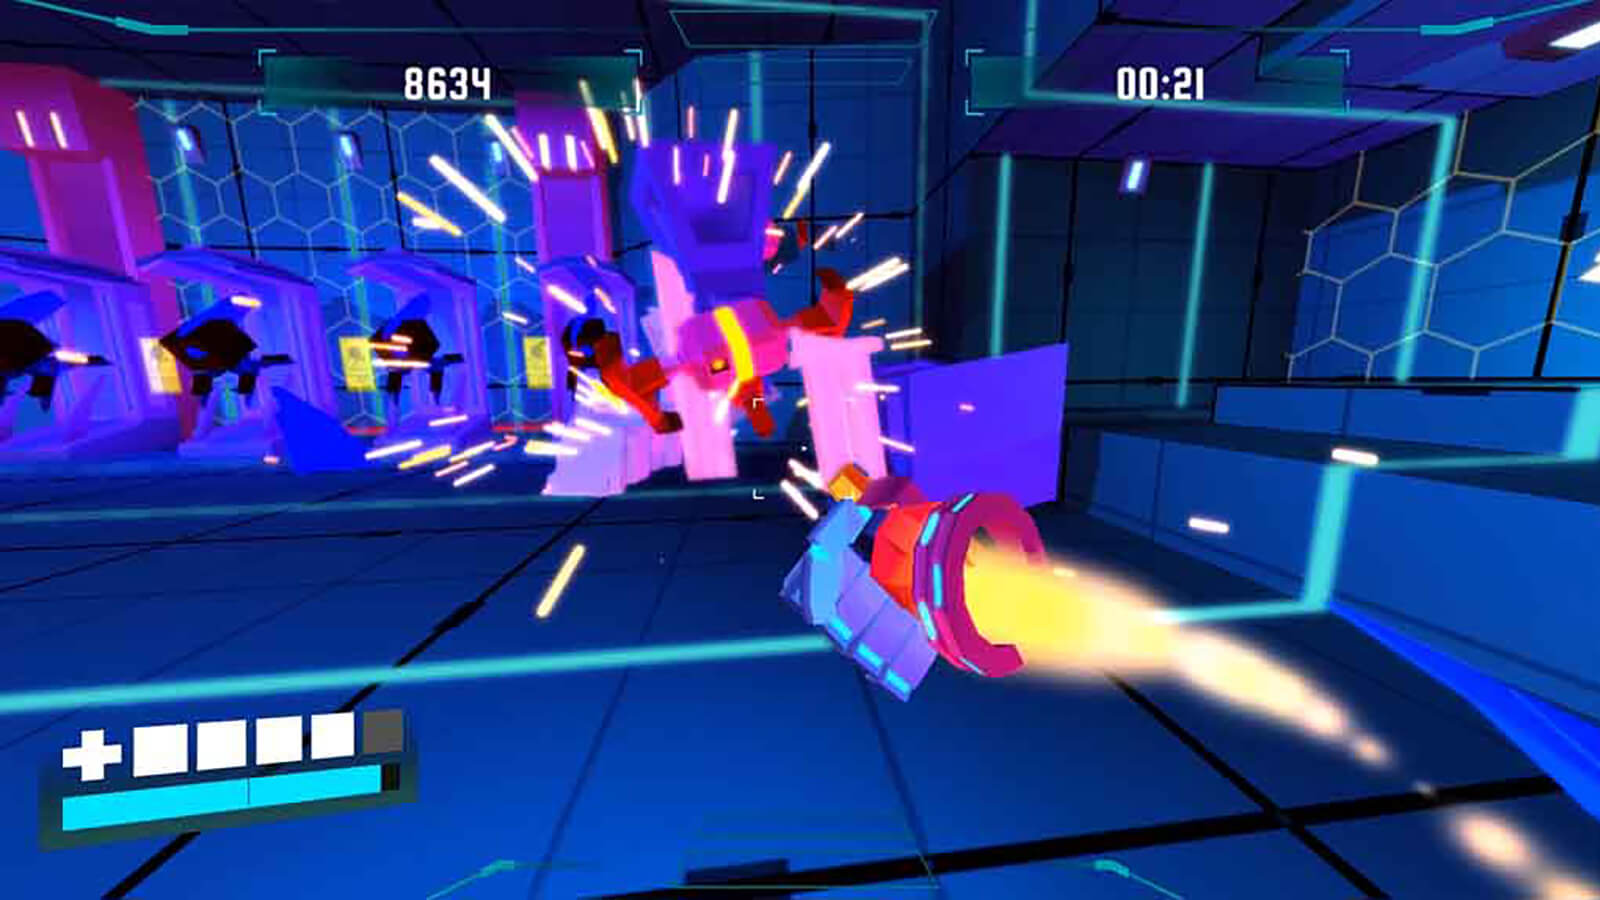 A violet-colored fist rockets through the air towards a sparking, floating robot in a neon-blue room.